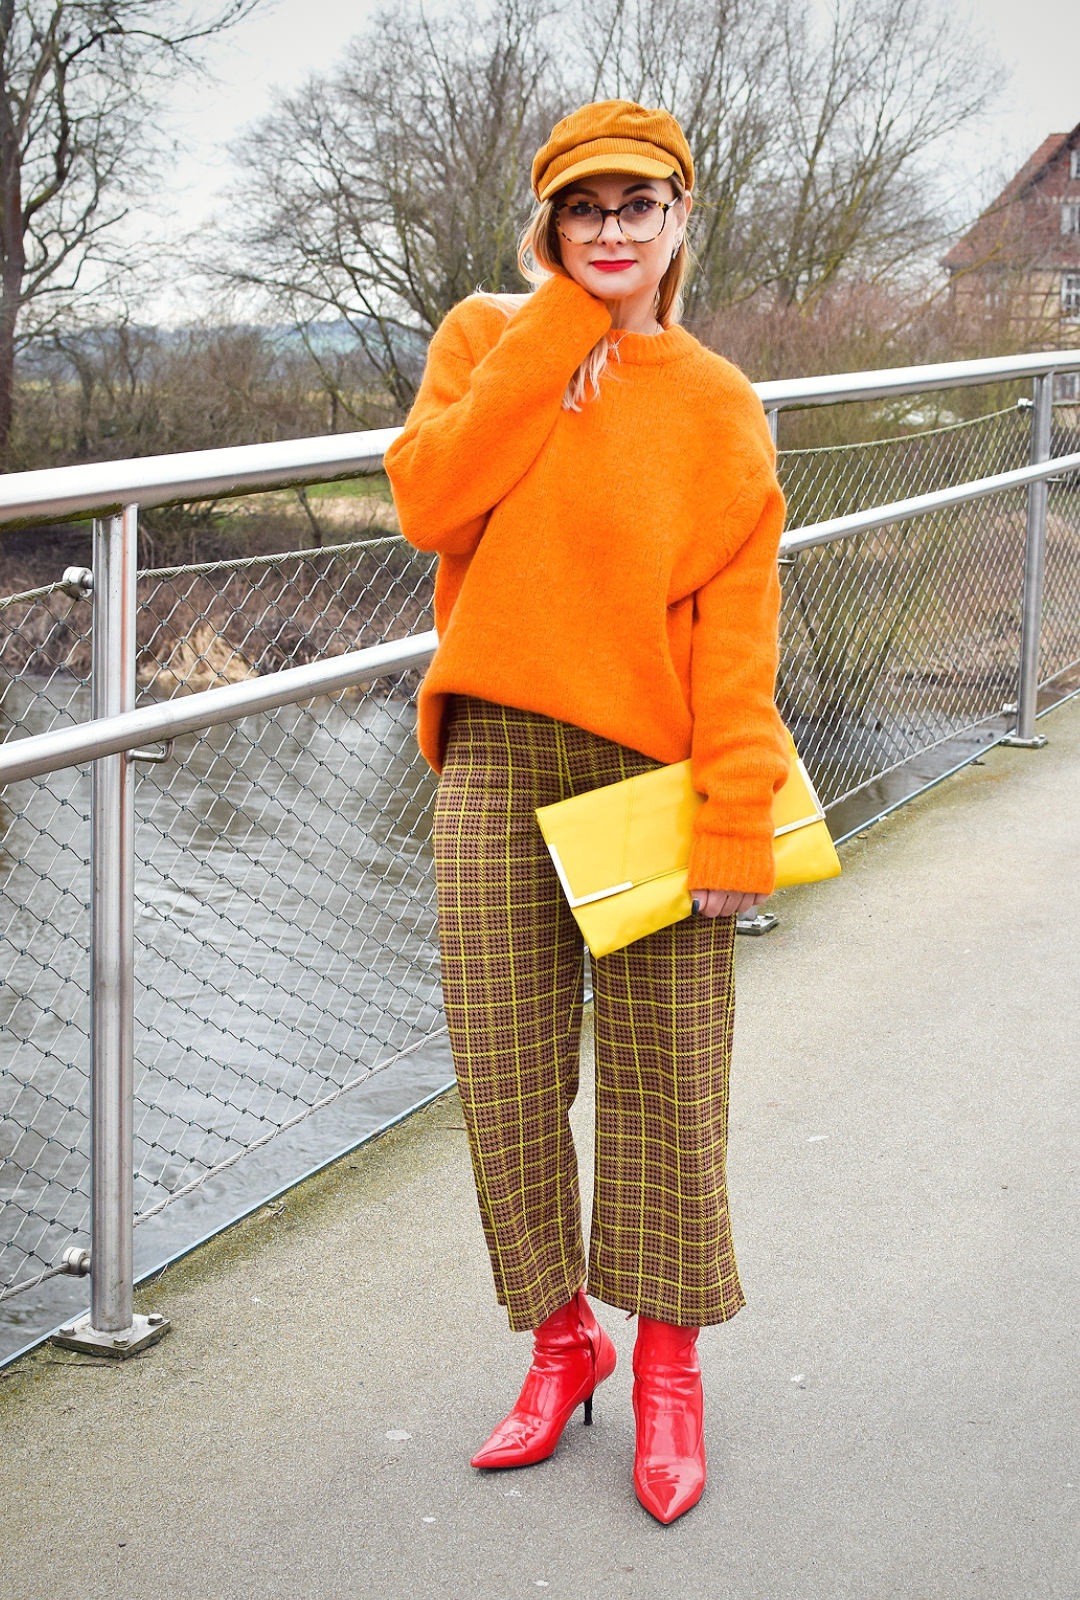 Outfitinso in Orange, Orange richtig stylen